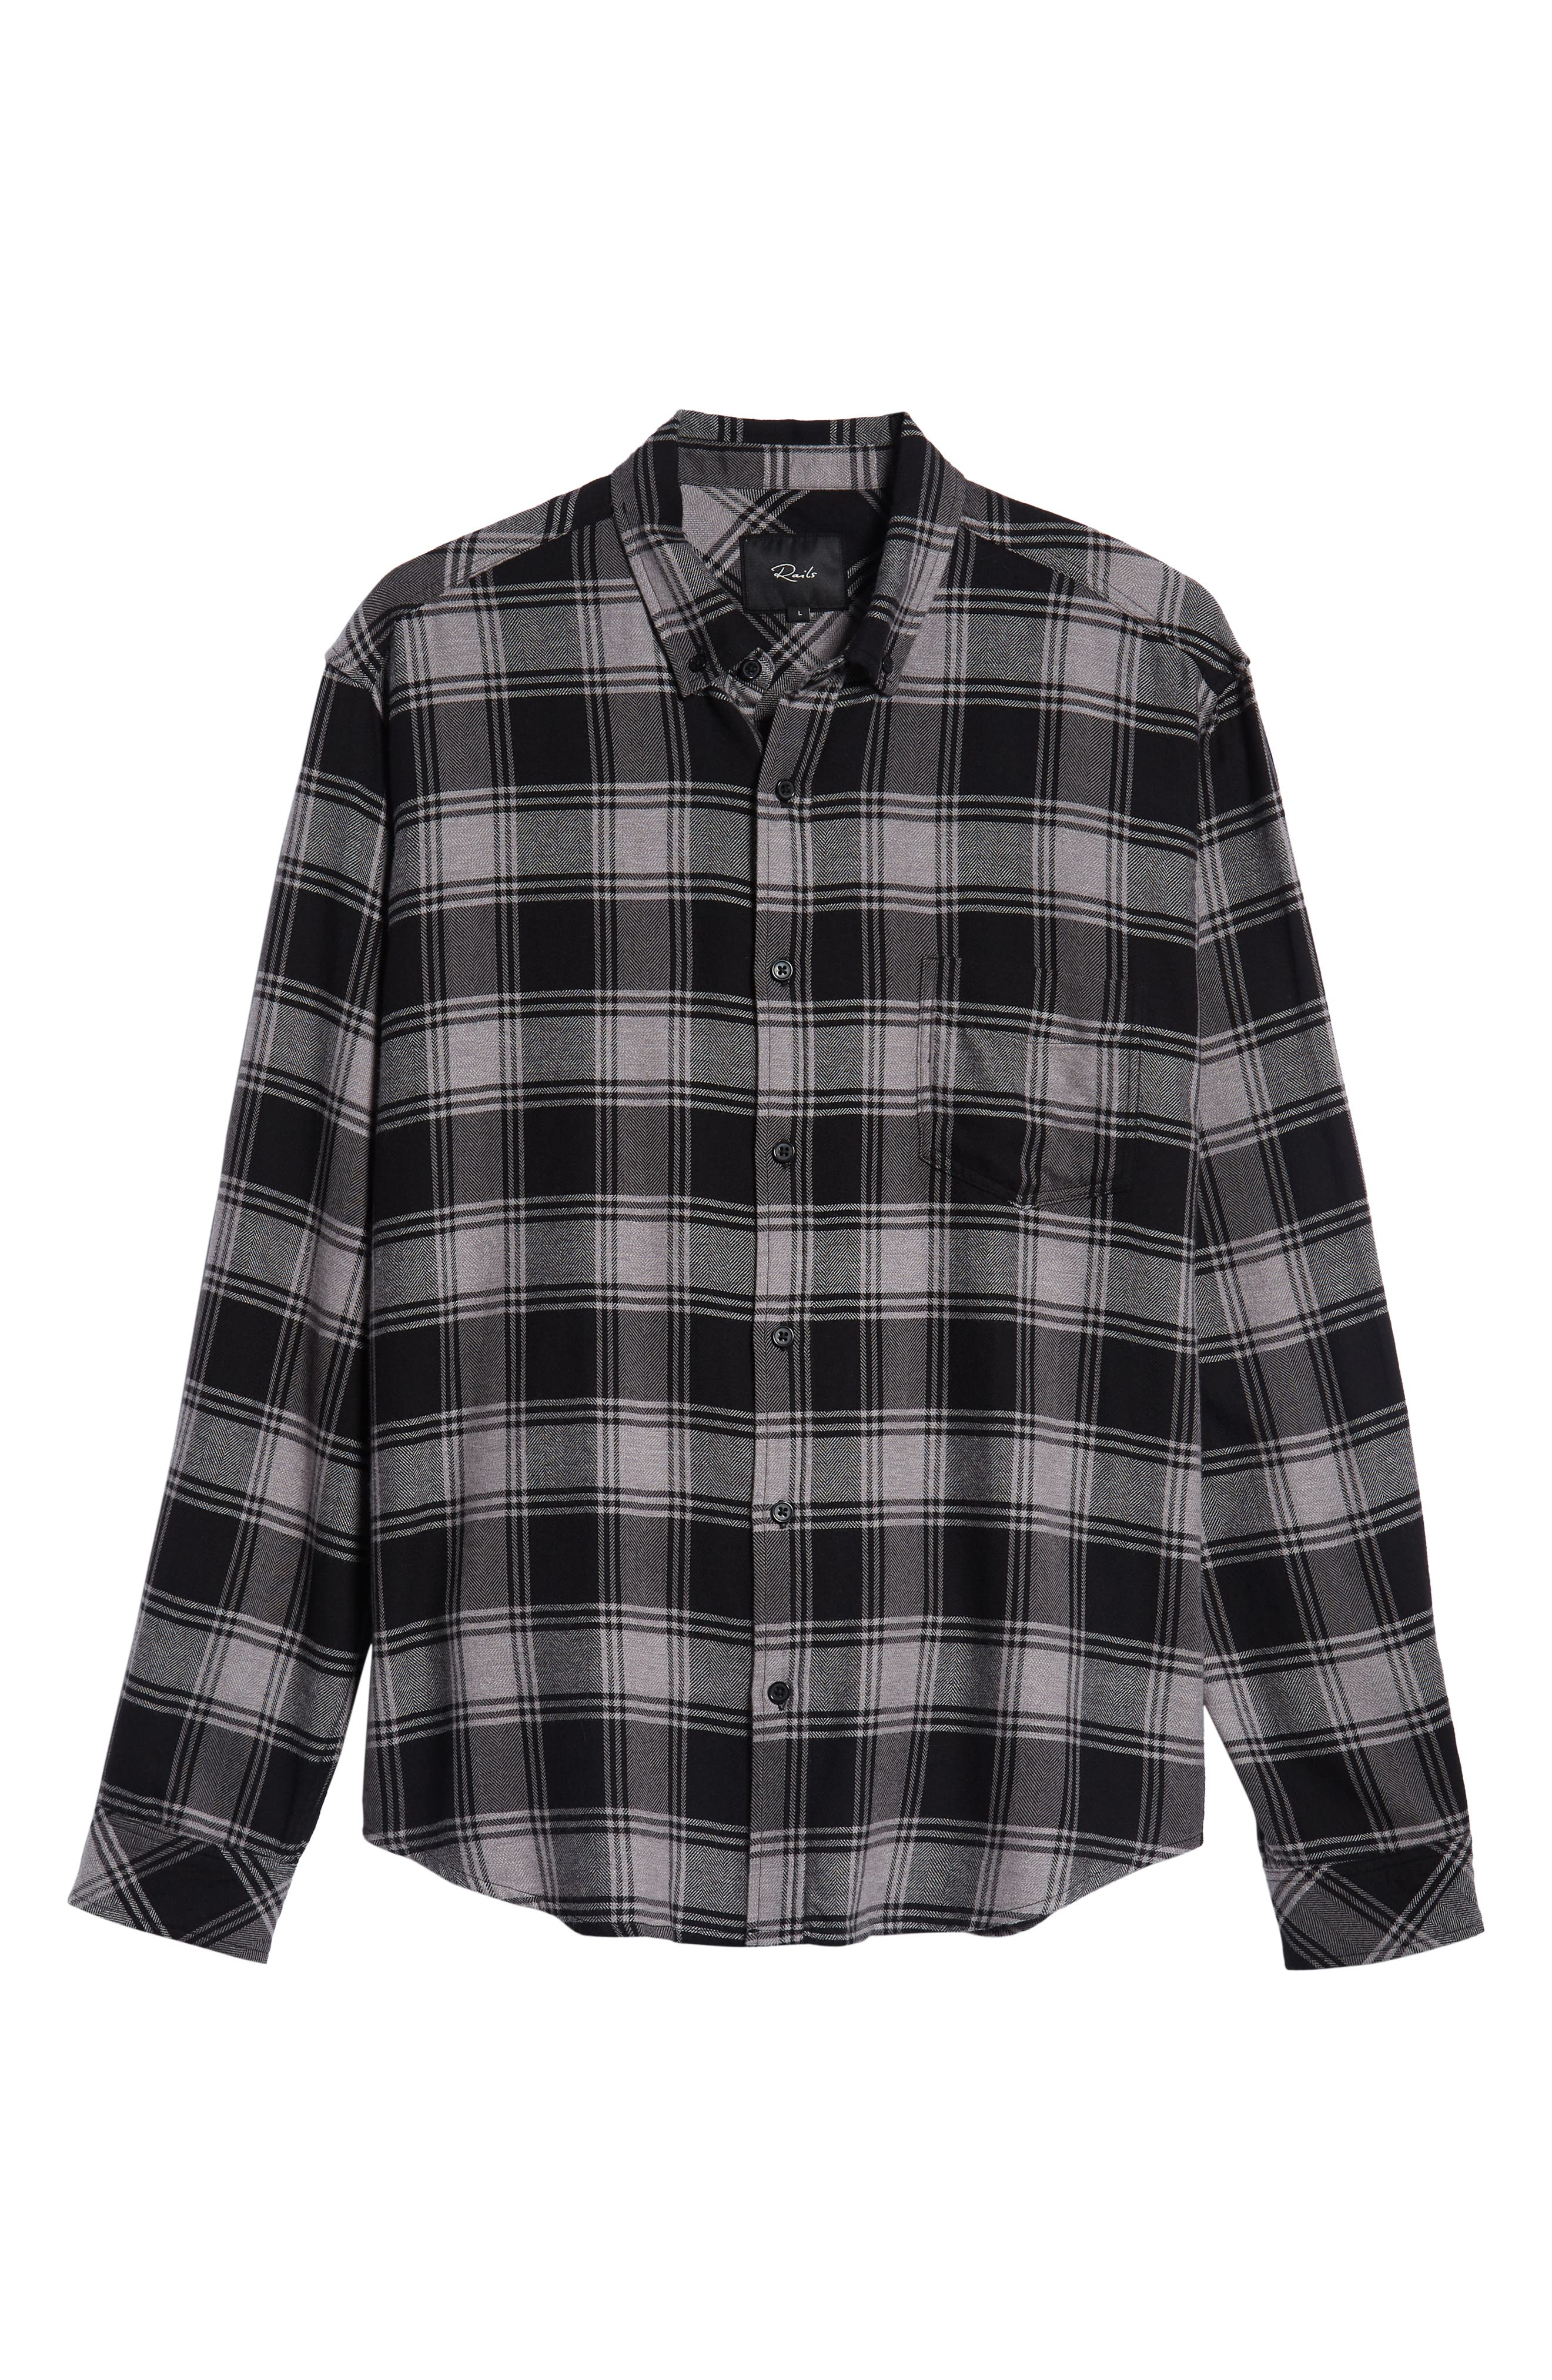 Lennox Slim Fit Plaid Sport Shirt,                             Alternate thumbnail 5, color,                             BLACK GREY